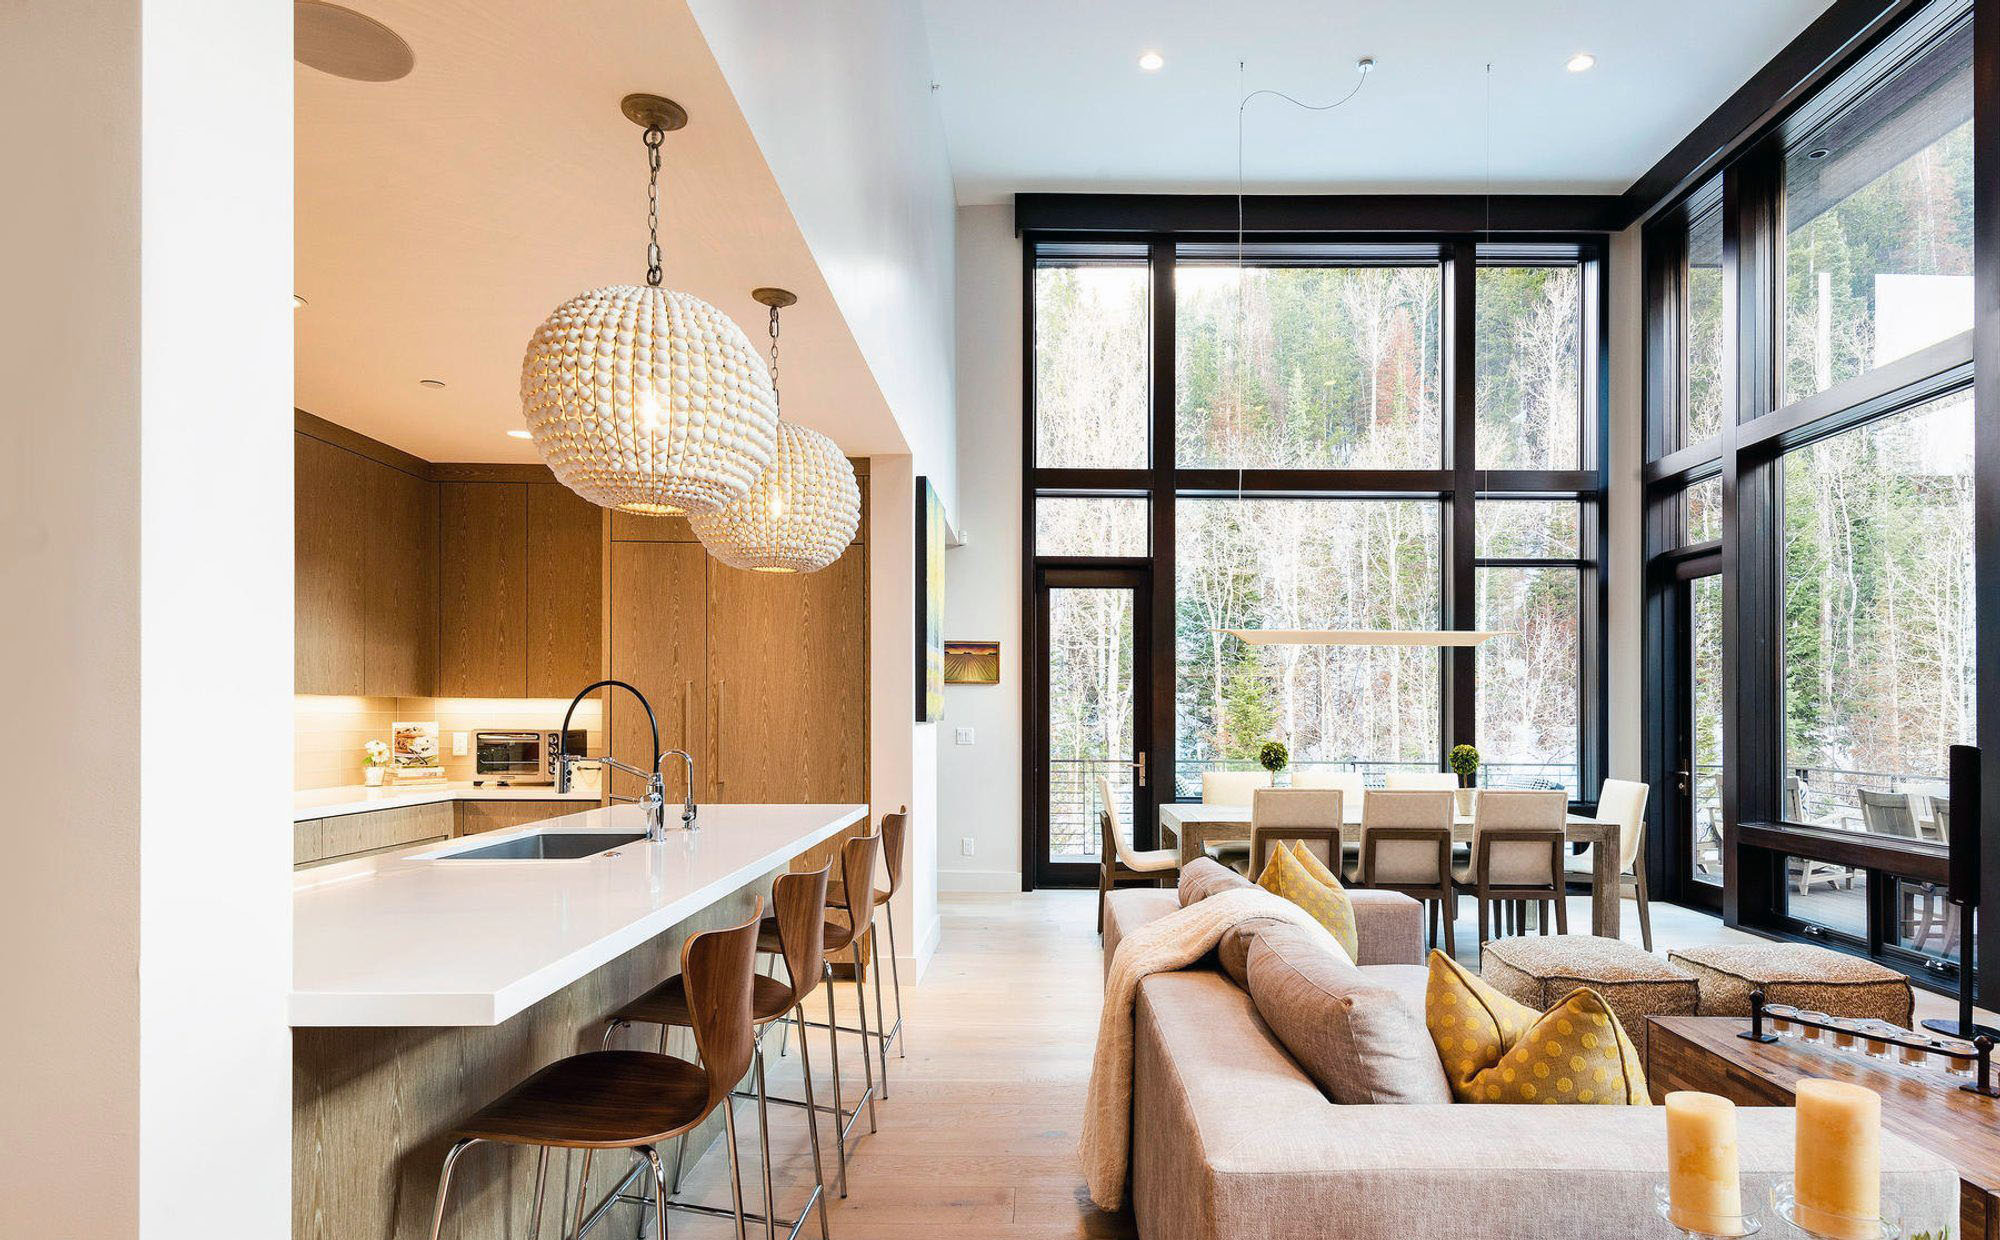 Open floor plan modern home with a beautiful kitchen design. Walls of glass 2 stories tall.